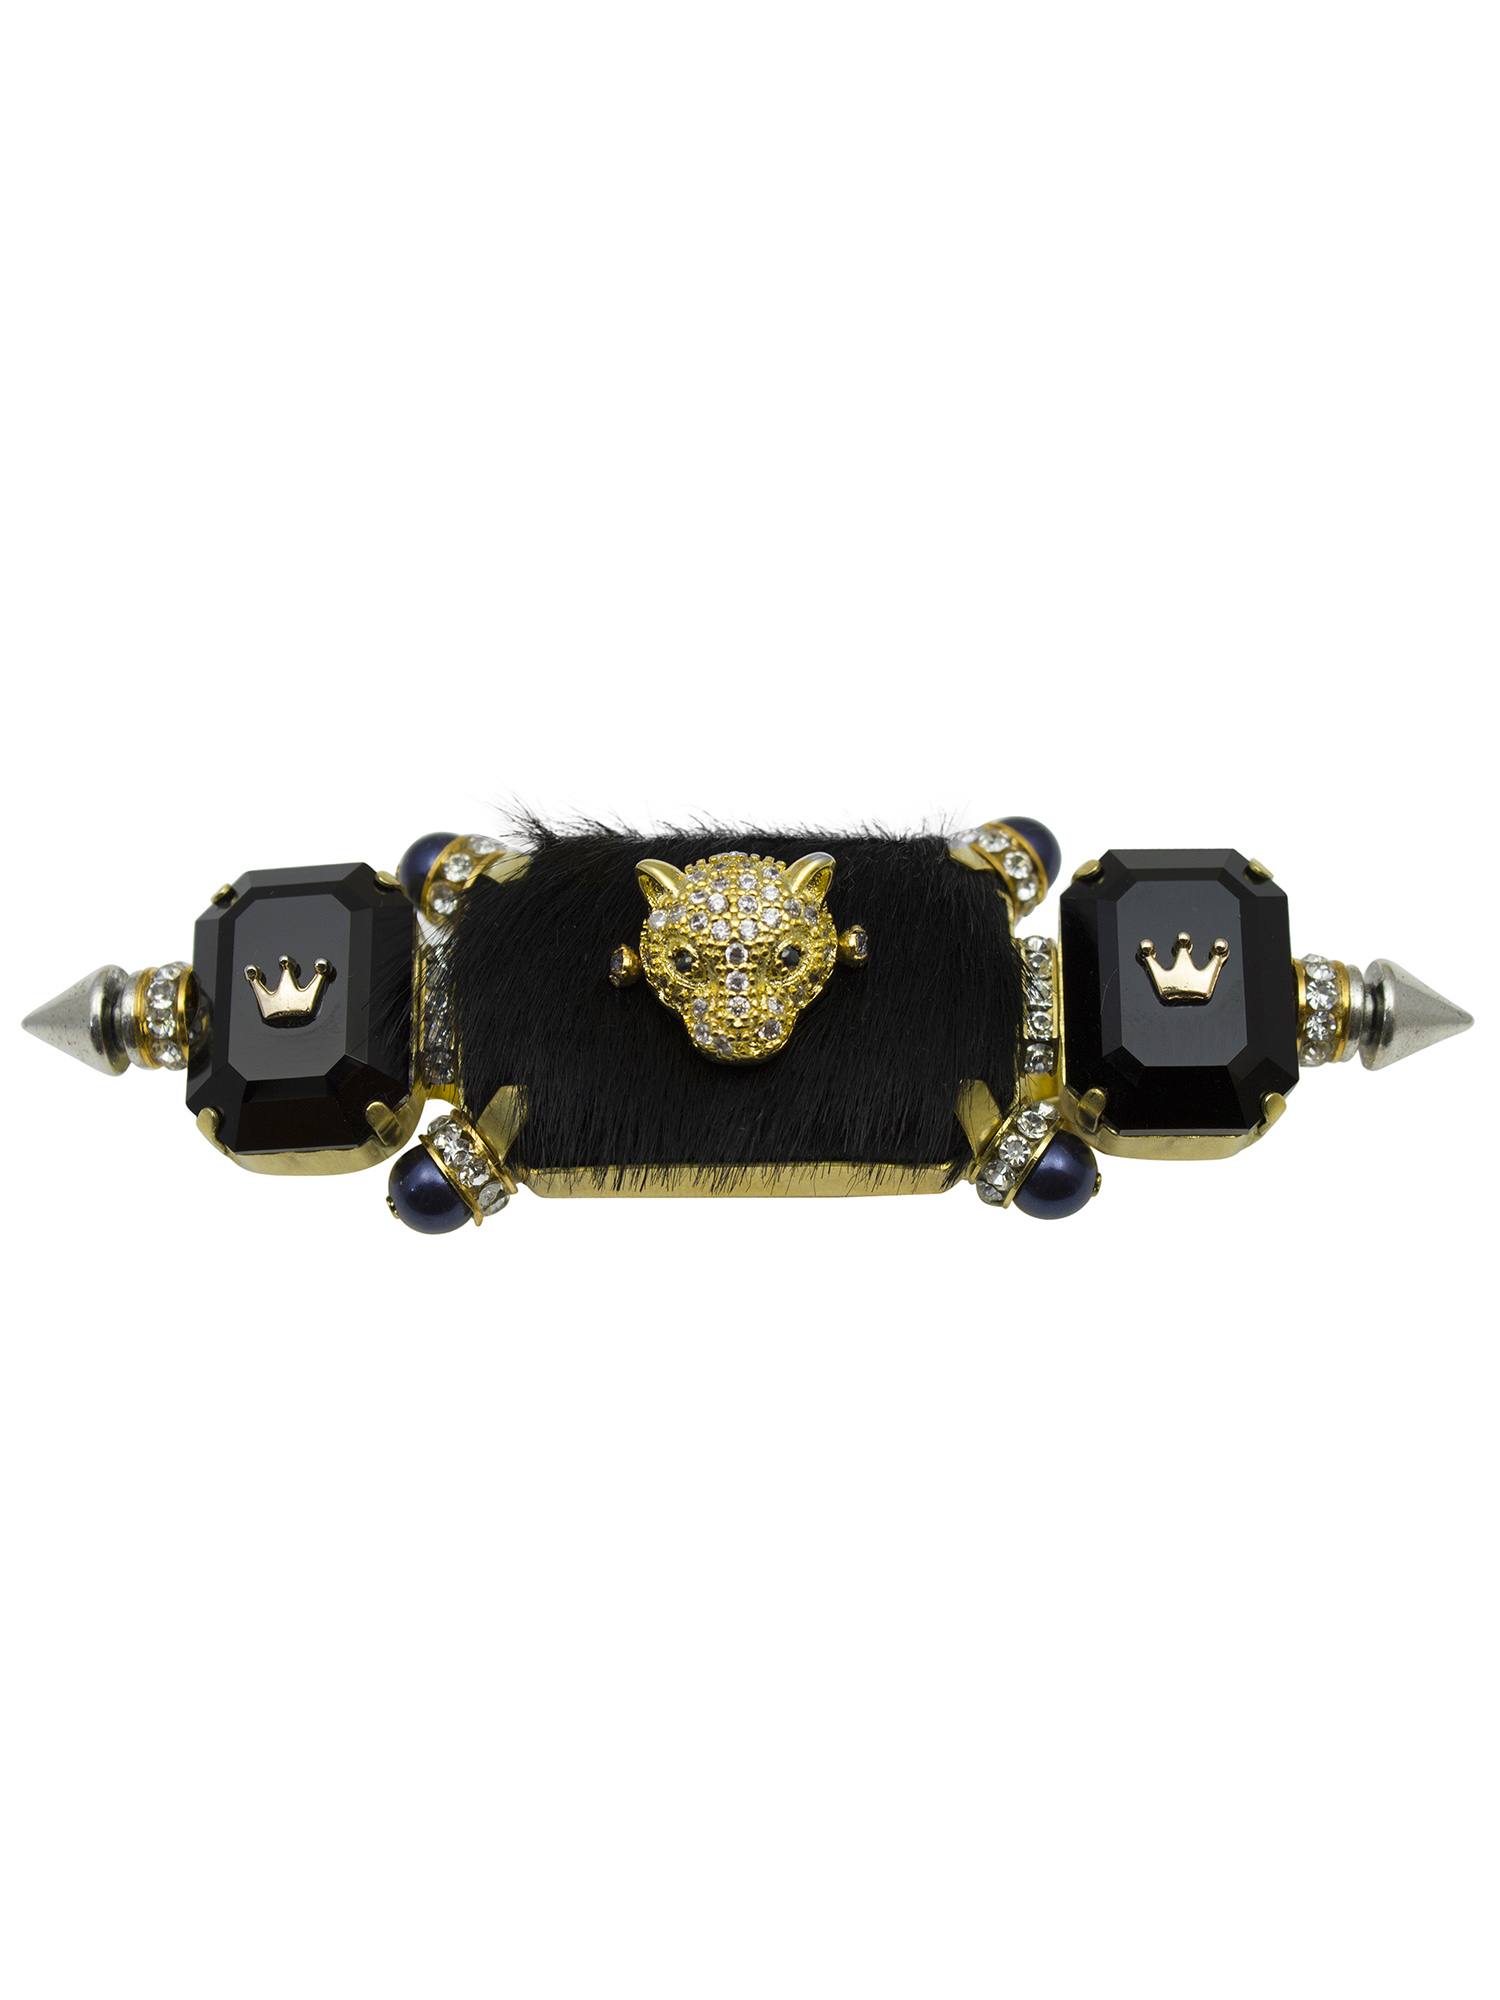 242R Black & Gold Triple Rectangle Knuckleduster Ring (1).jpg